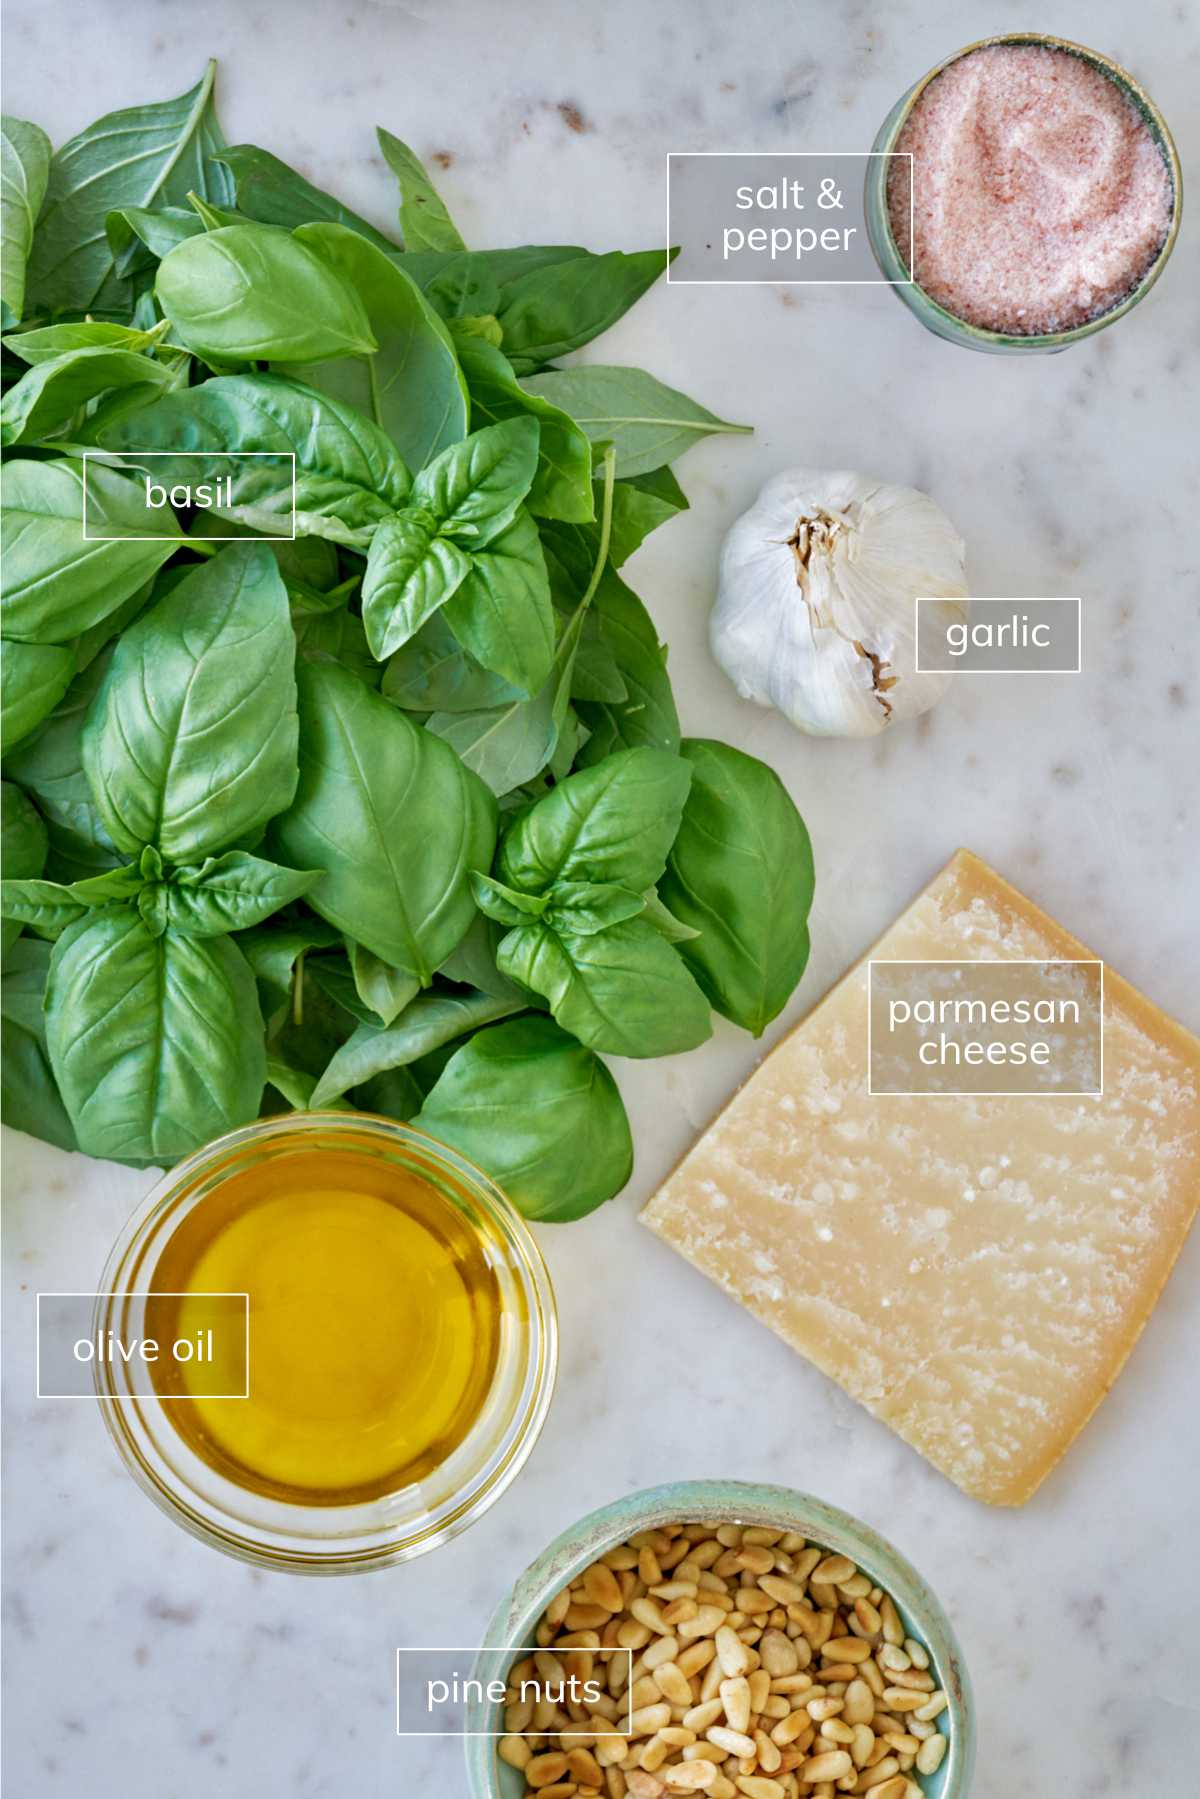 Ingredients for garlic basil pesto on a white countertop.